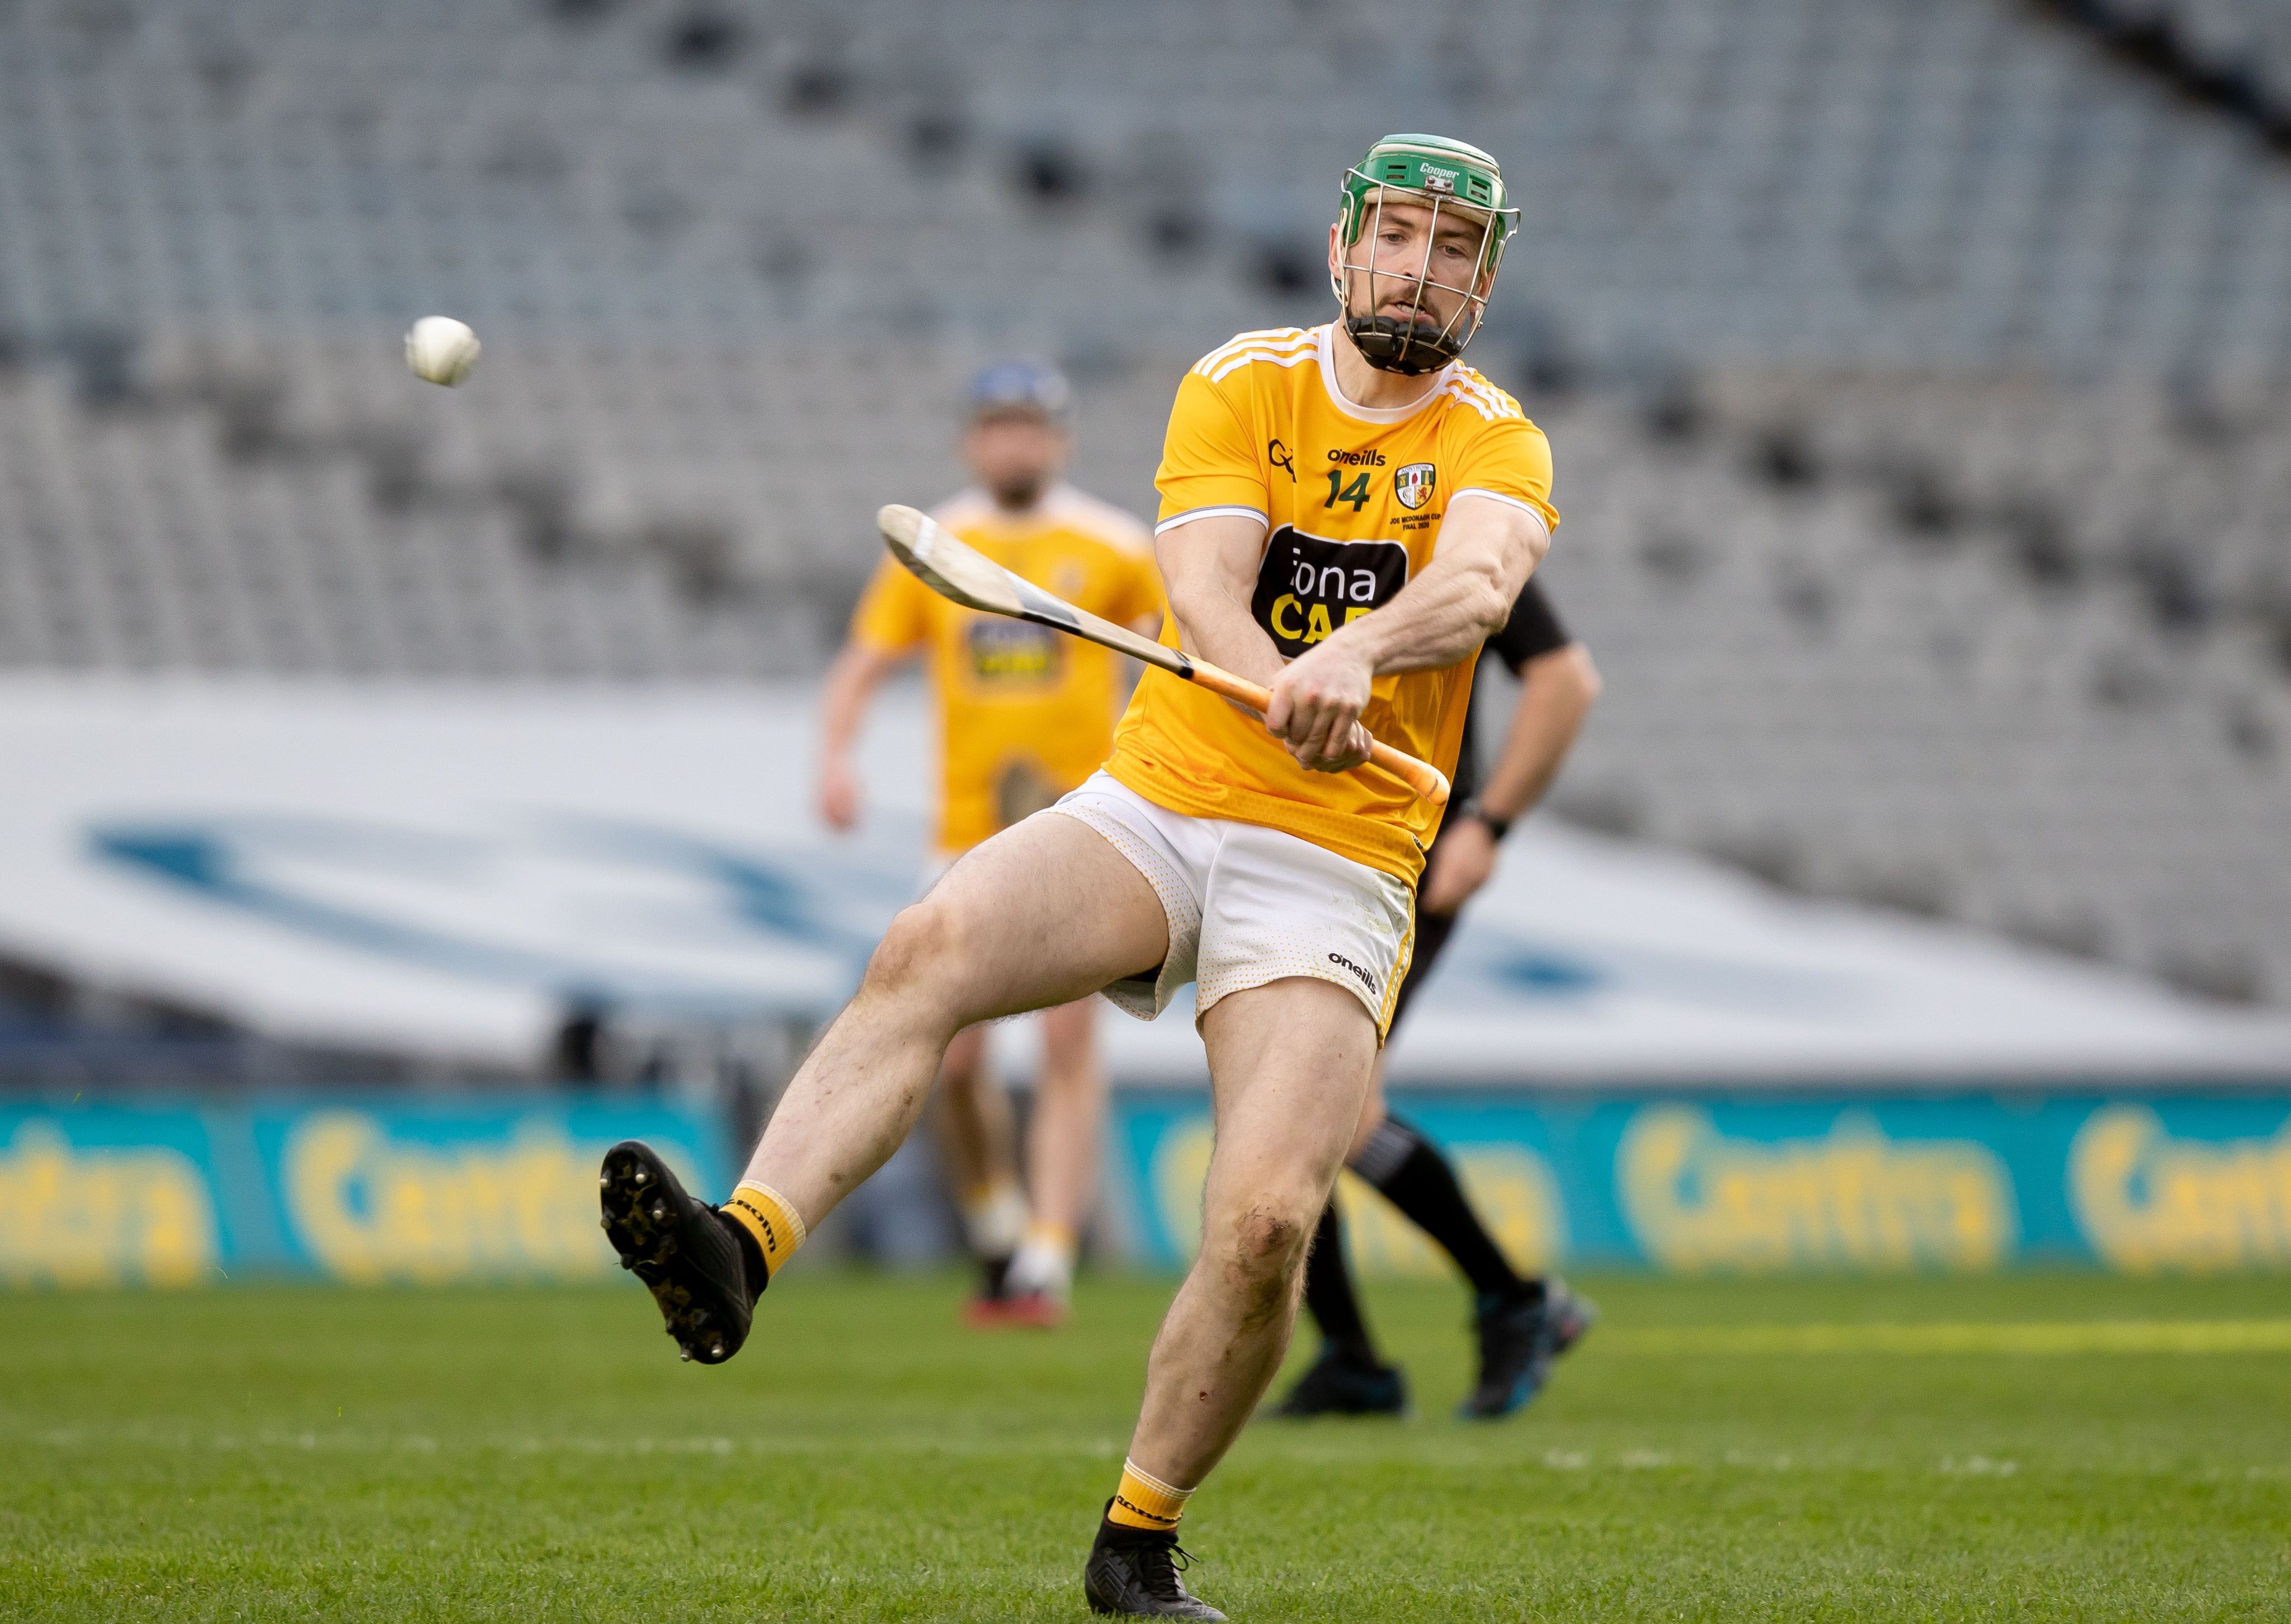 Antrim hurling captain Conor McCann says he and his team-mates are relishing the challenges ahead